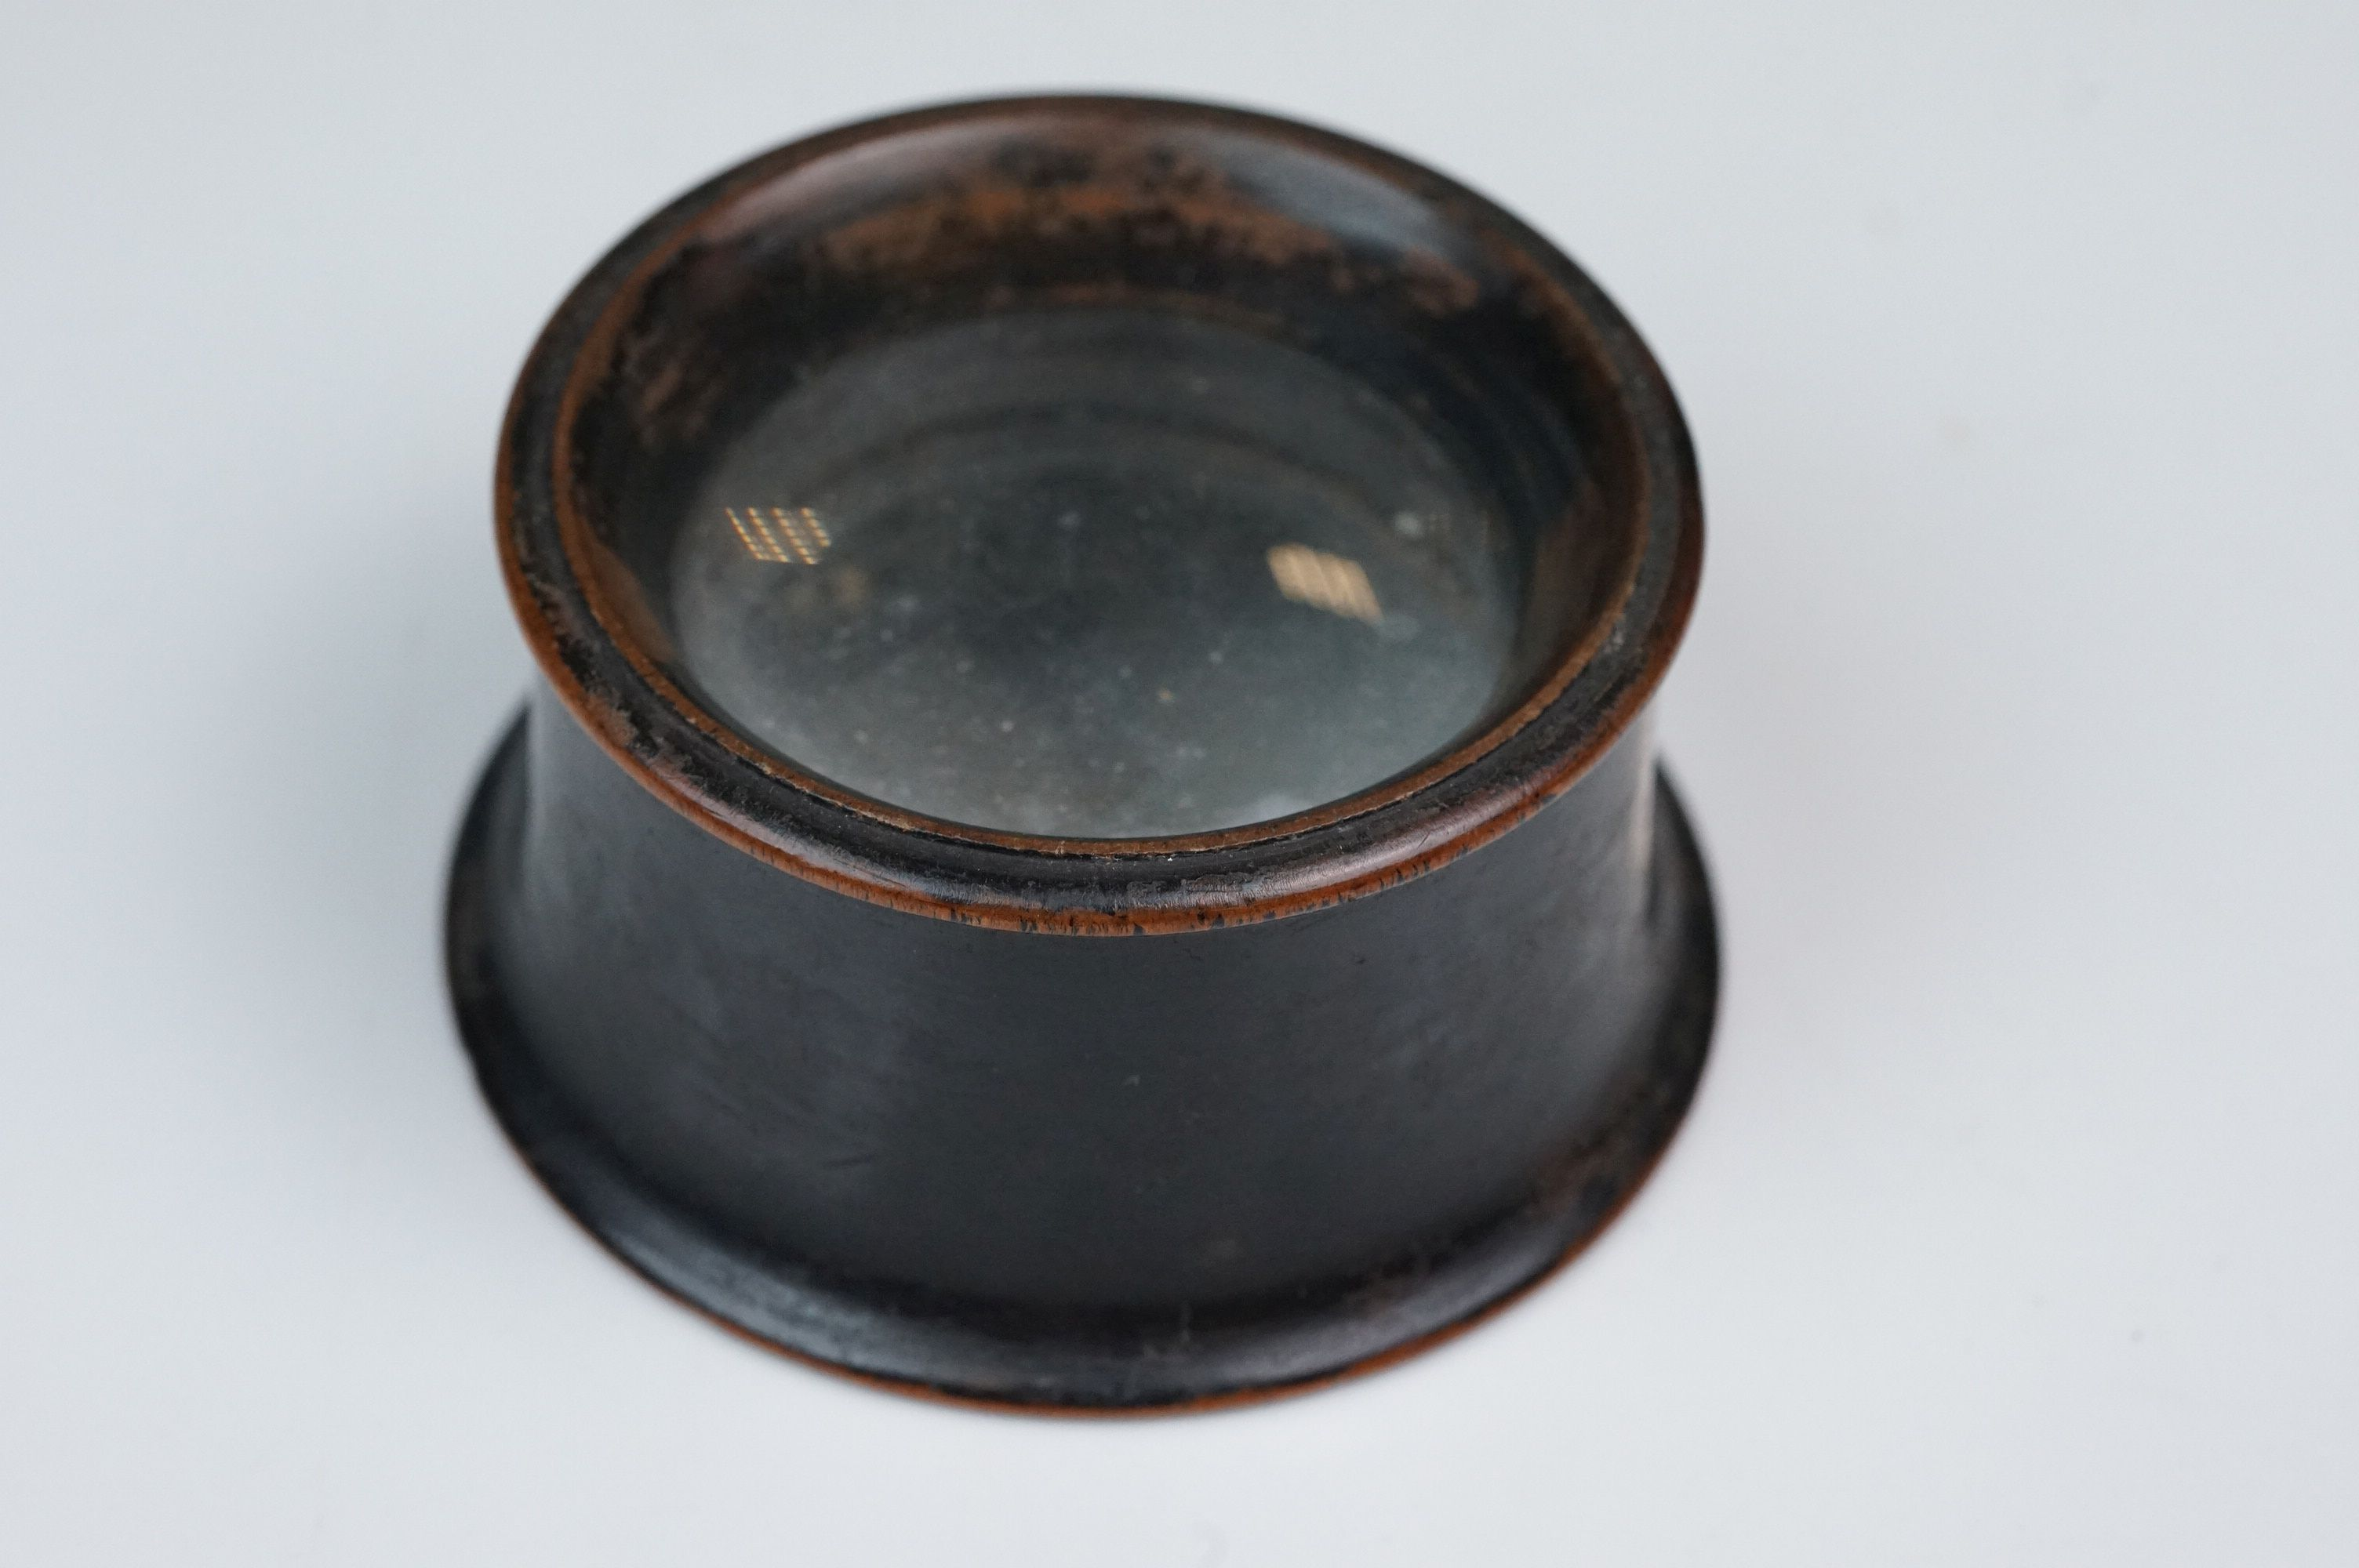 A 19th century wooden magnifying loupe.